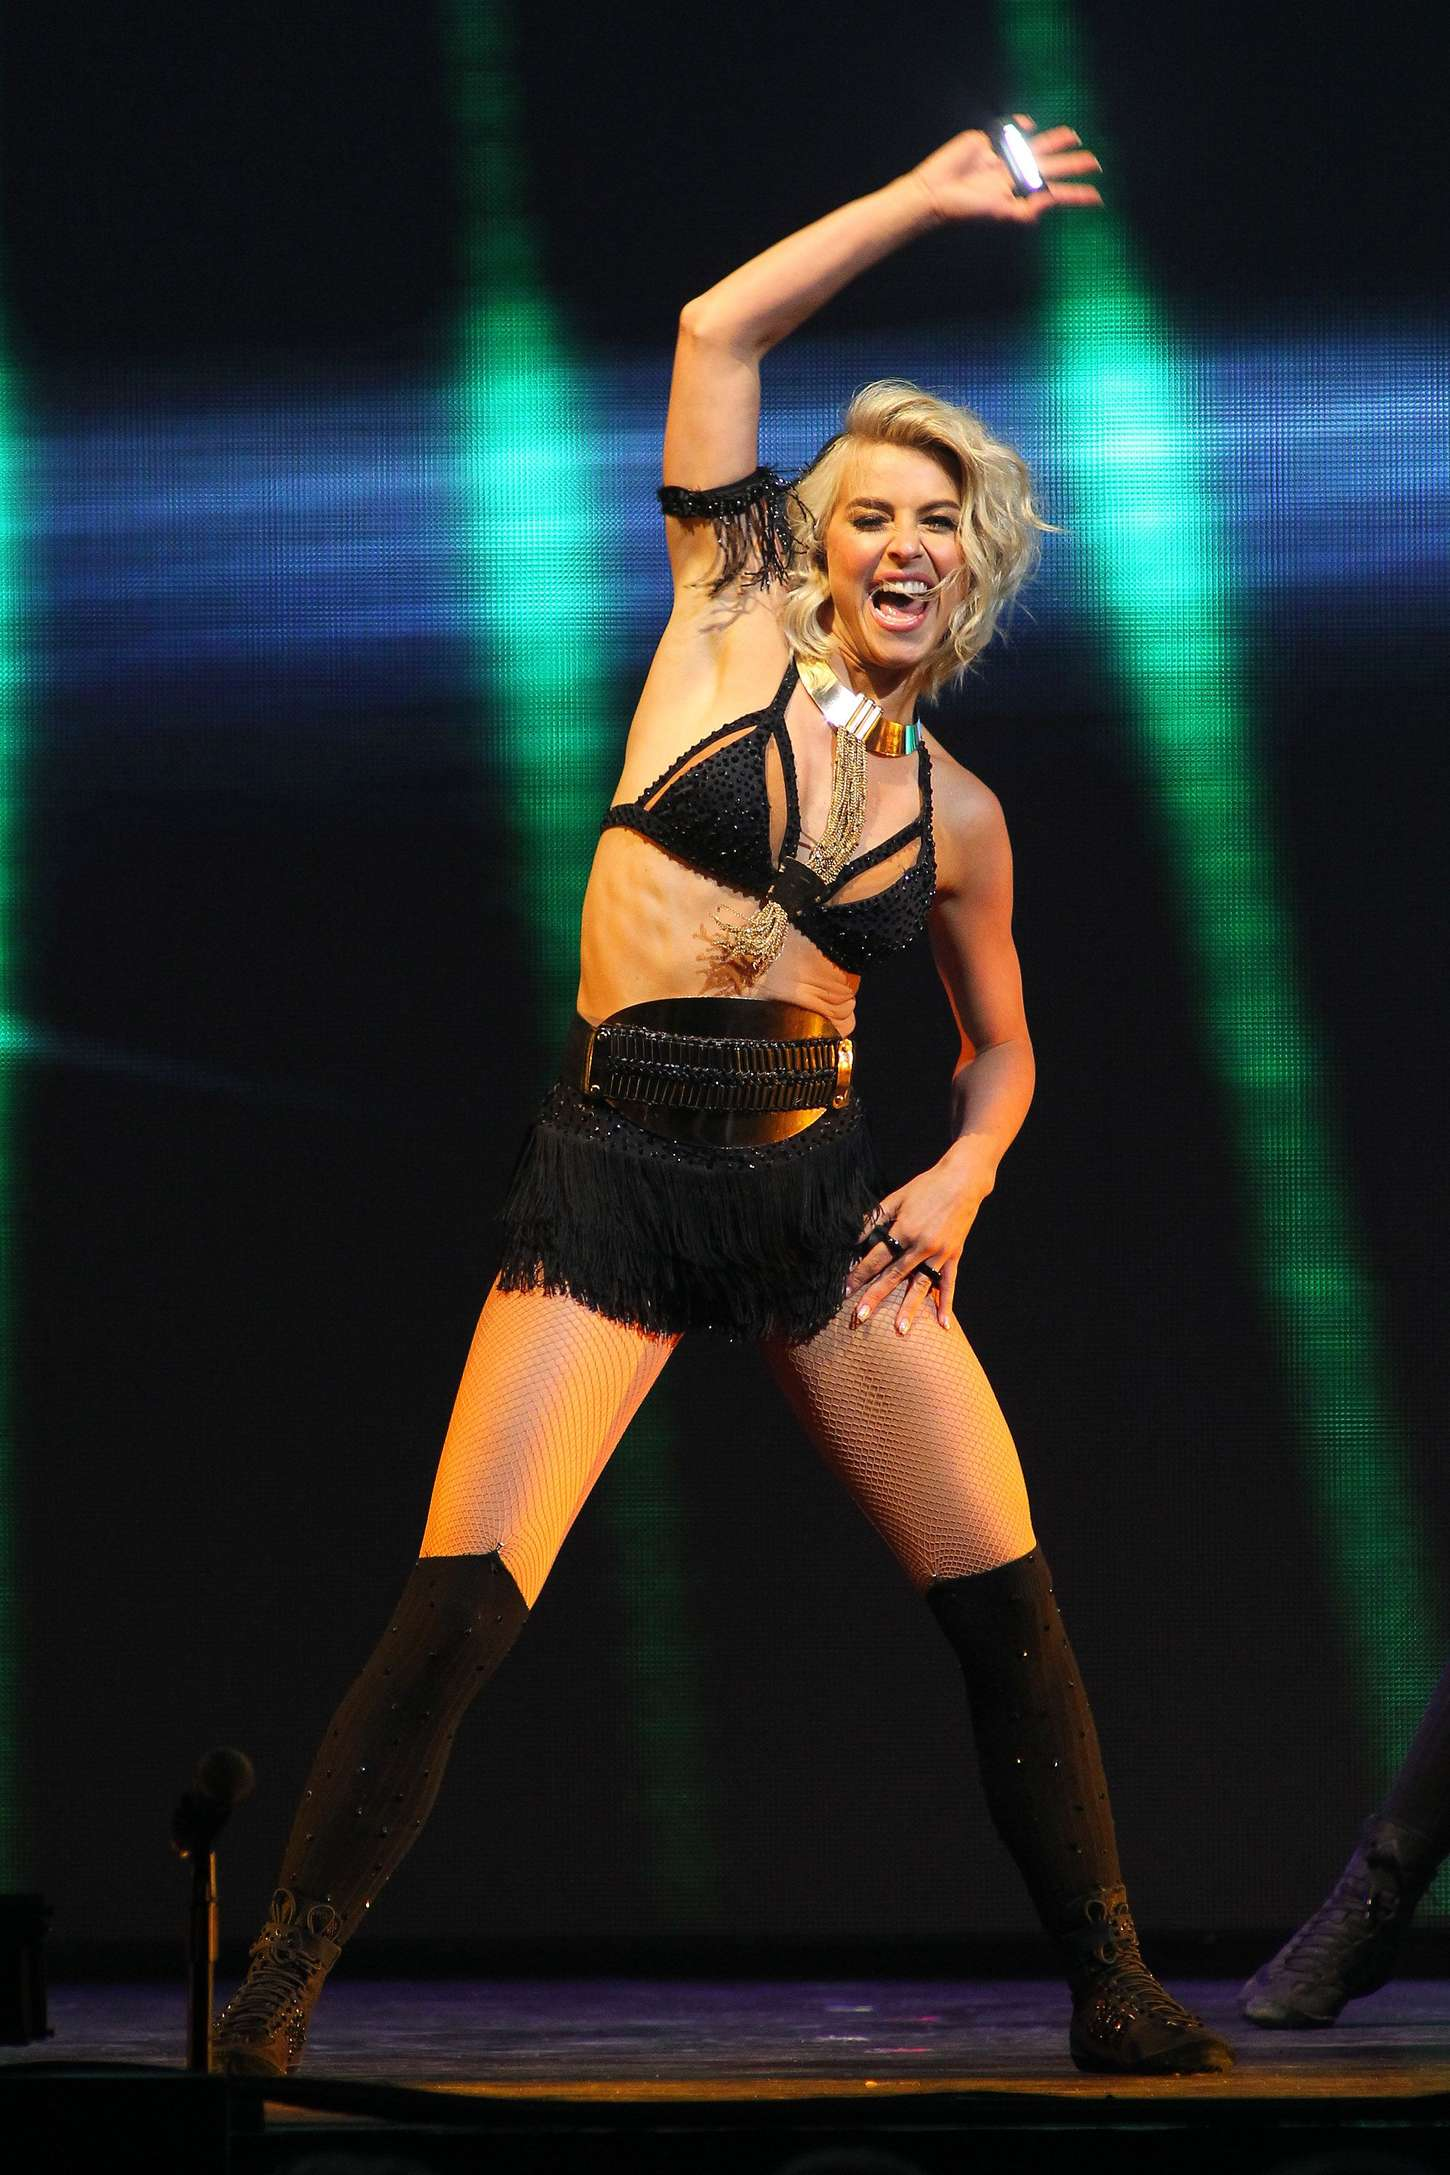 Julianne Hough 2015 : Julianne Hough: Performing at MOVE Live on Tour -23